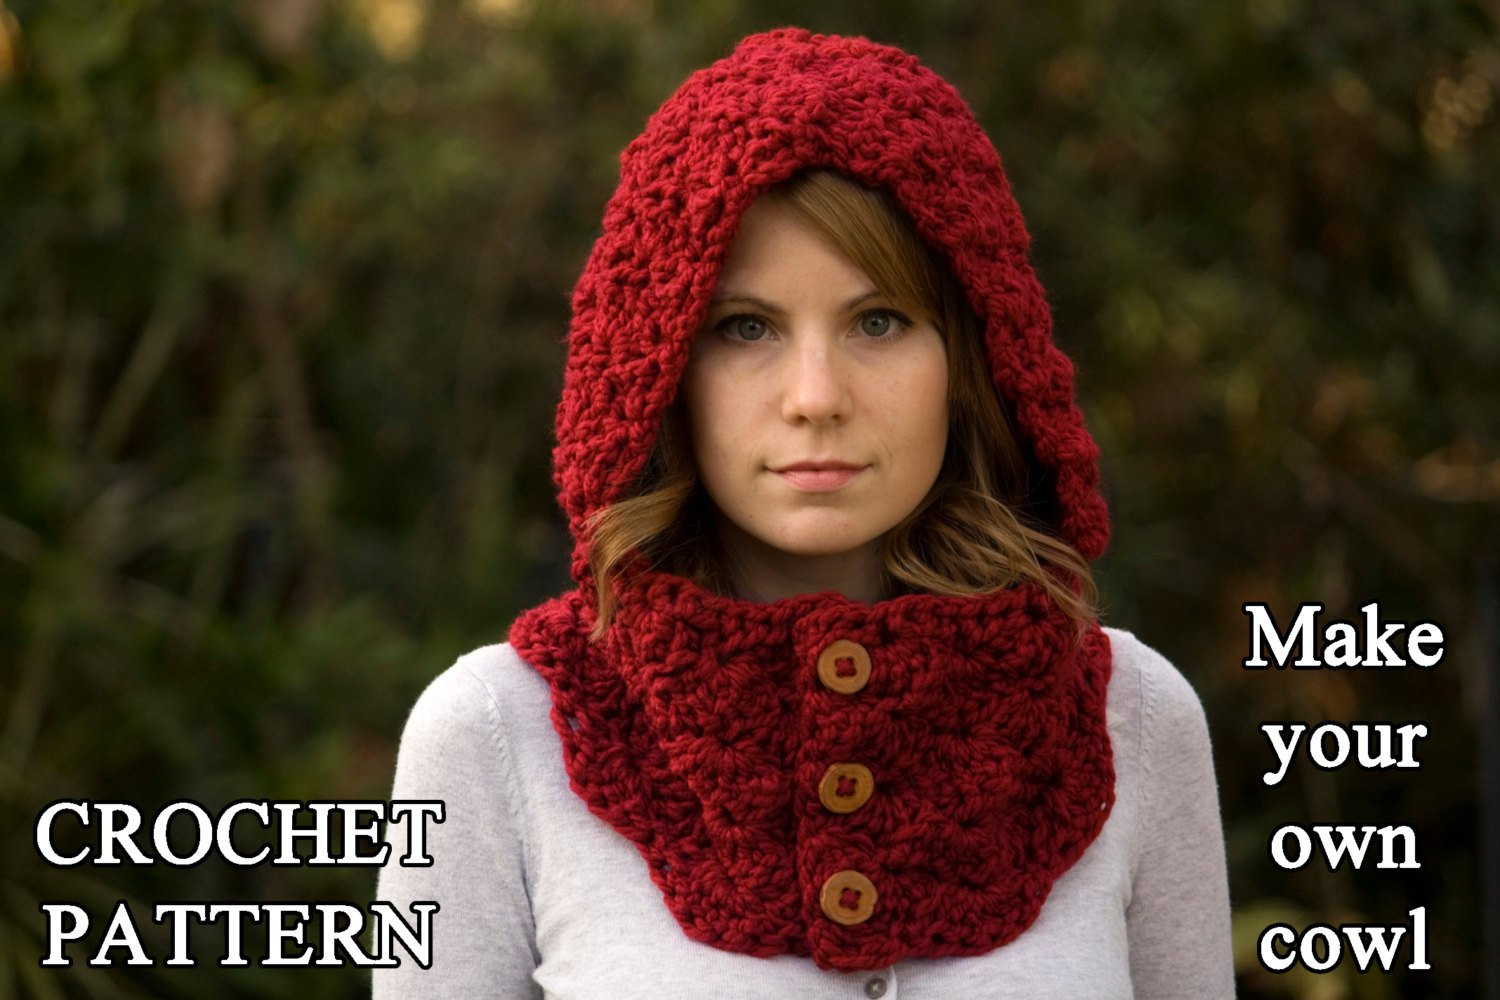 Crochet Hoodie Awesome Crochet Pattern Hooded Cowl button Neck Warmer Crochet Of Awesome 43 Images Crochet Hoodie